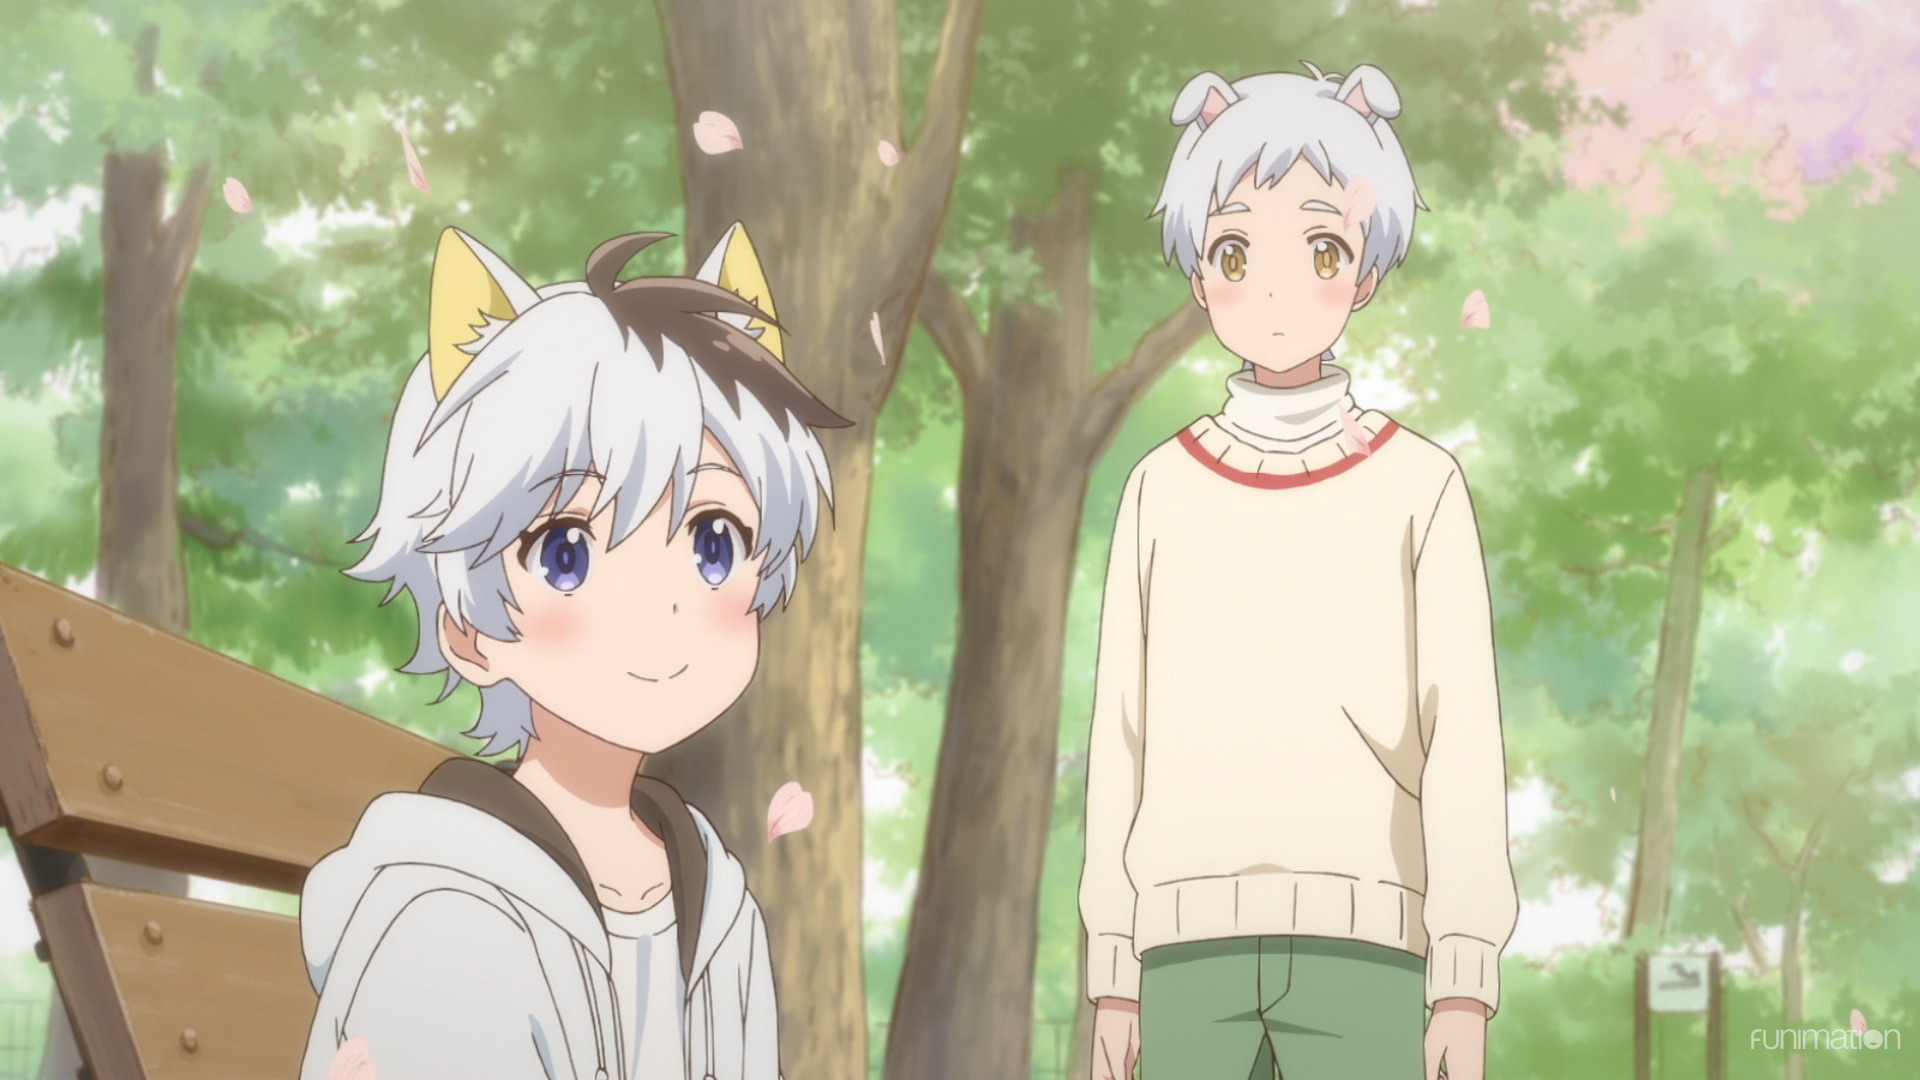 Two boys, one with dog ears and one with cat years sit in a park smiling